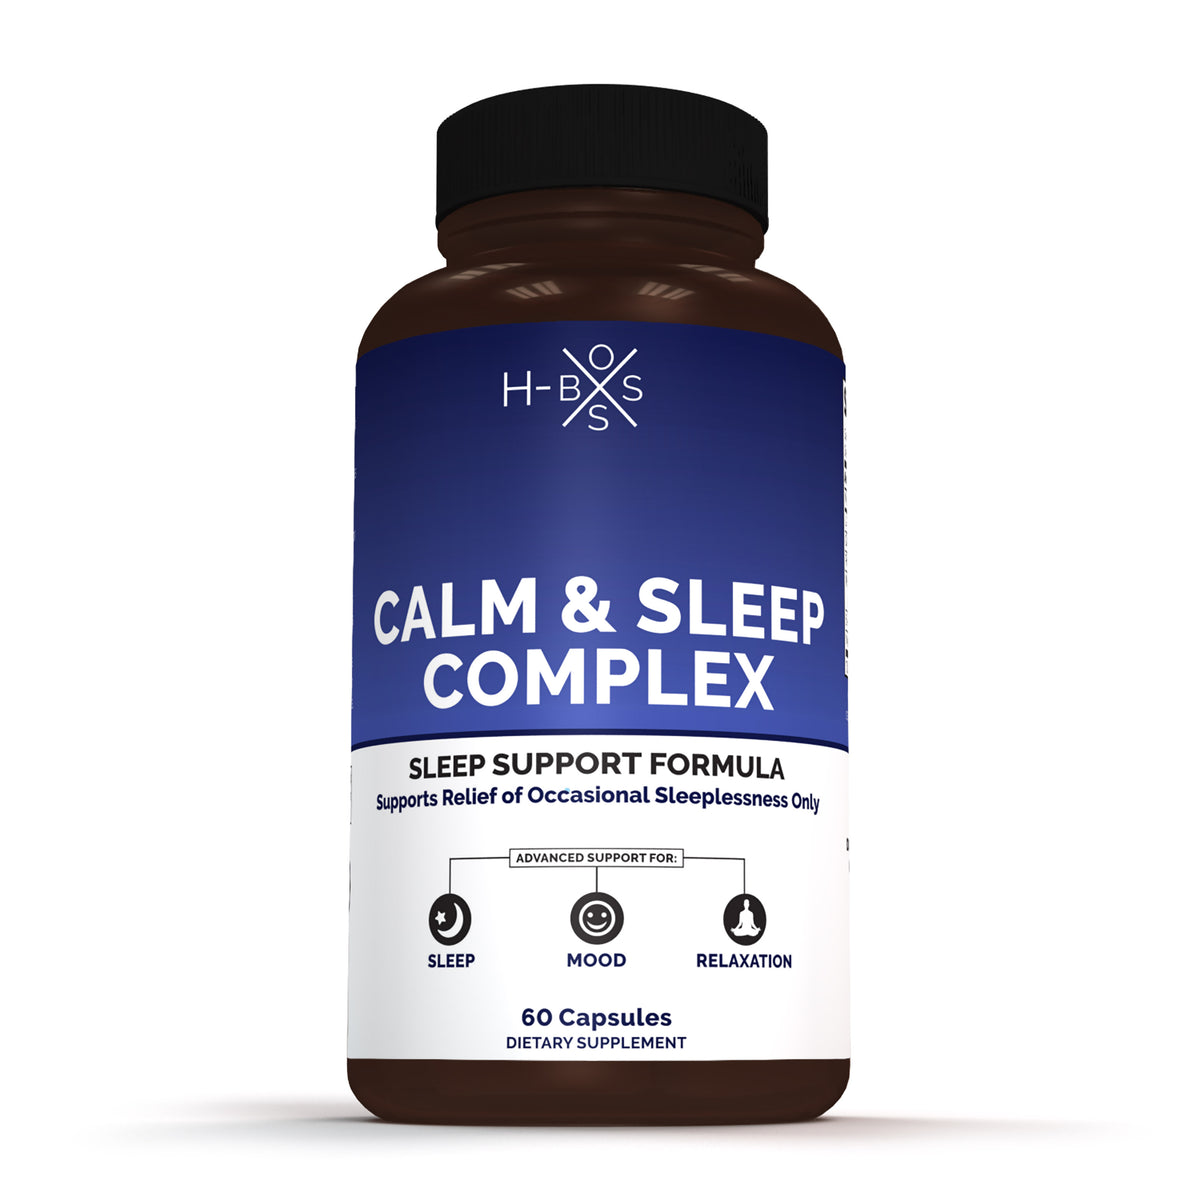 CALM & SLEEP AID COMPLEX